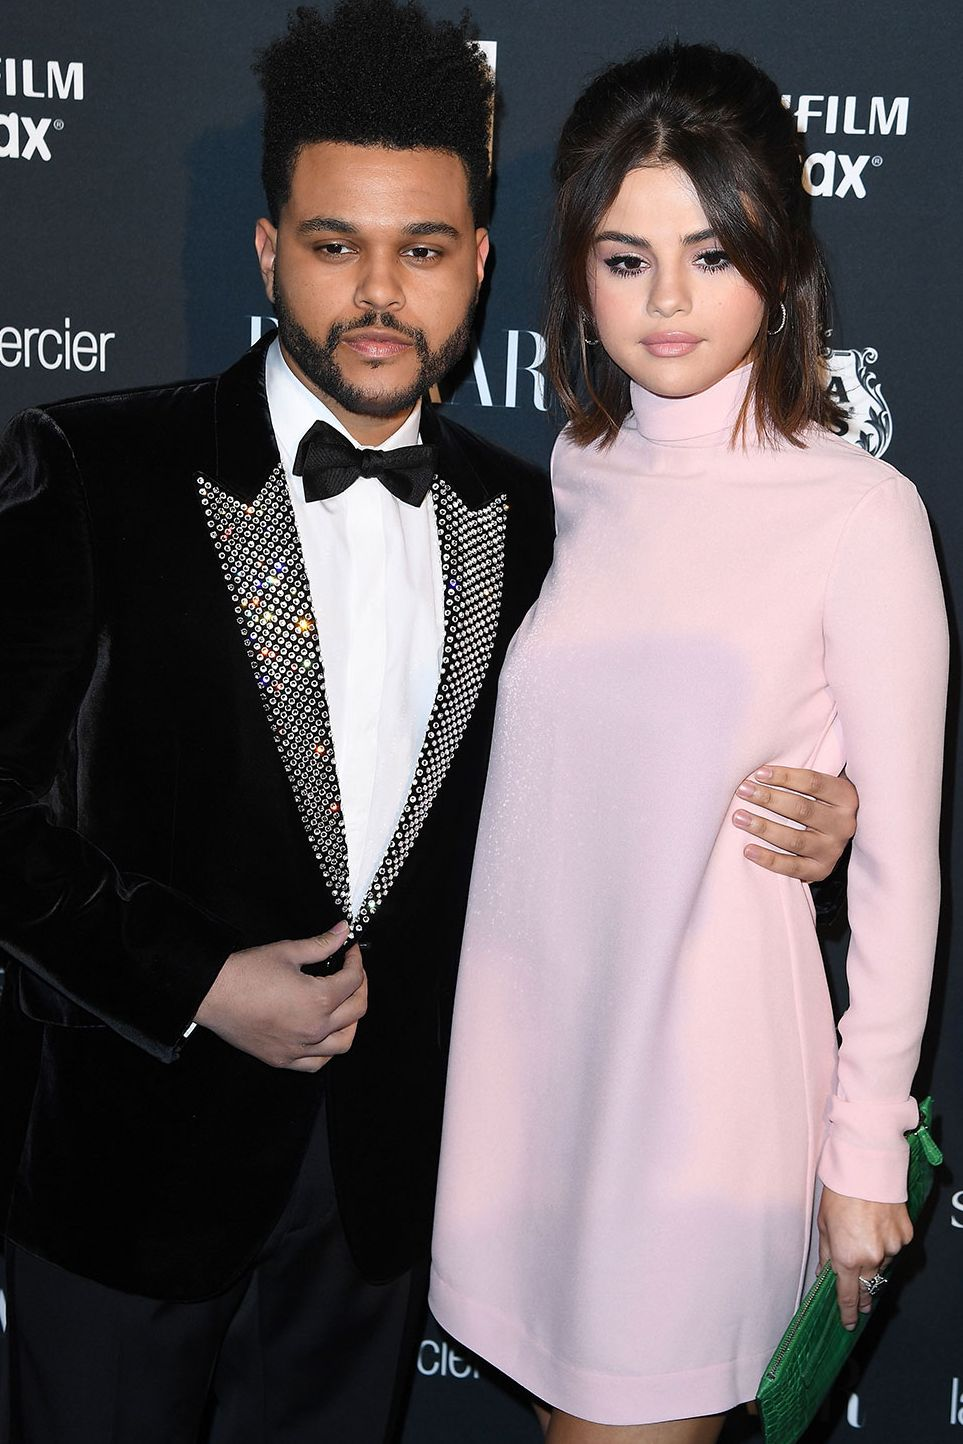 Selena Gomez and The Weeknd It seems like their relationship ended right when they gained the ability to mimic each other's facial expressions. Maybe that's why it stung so much.